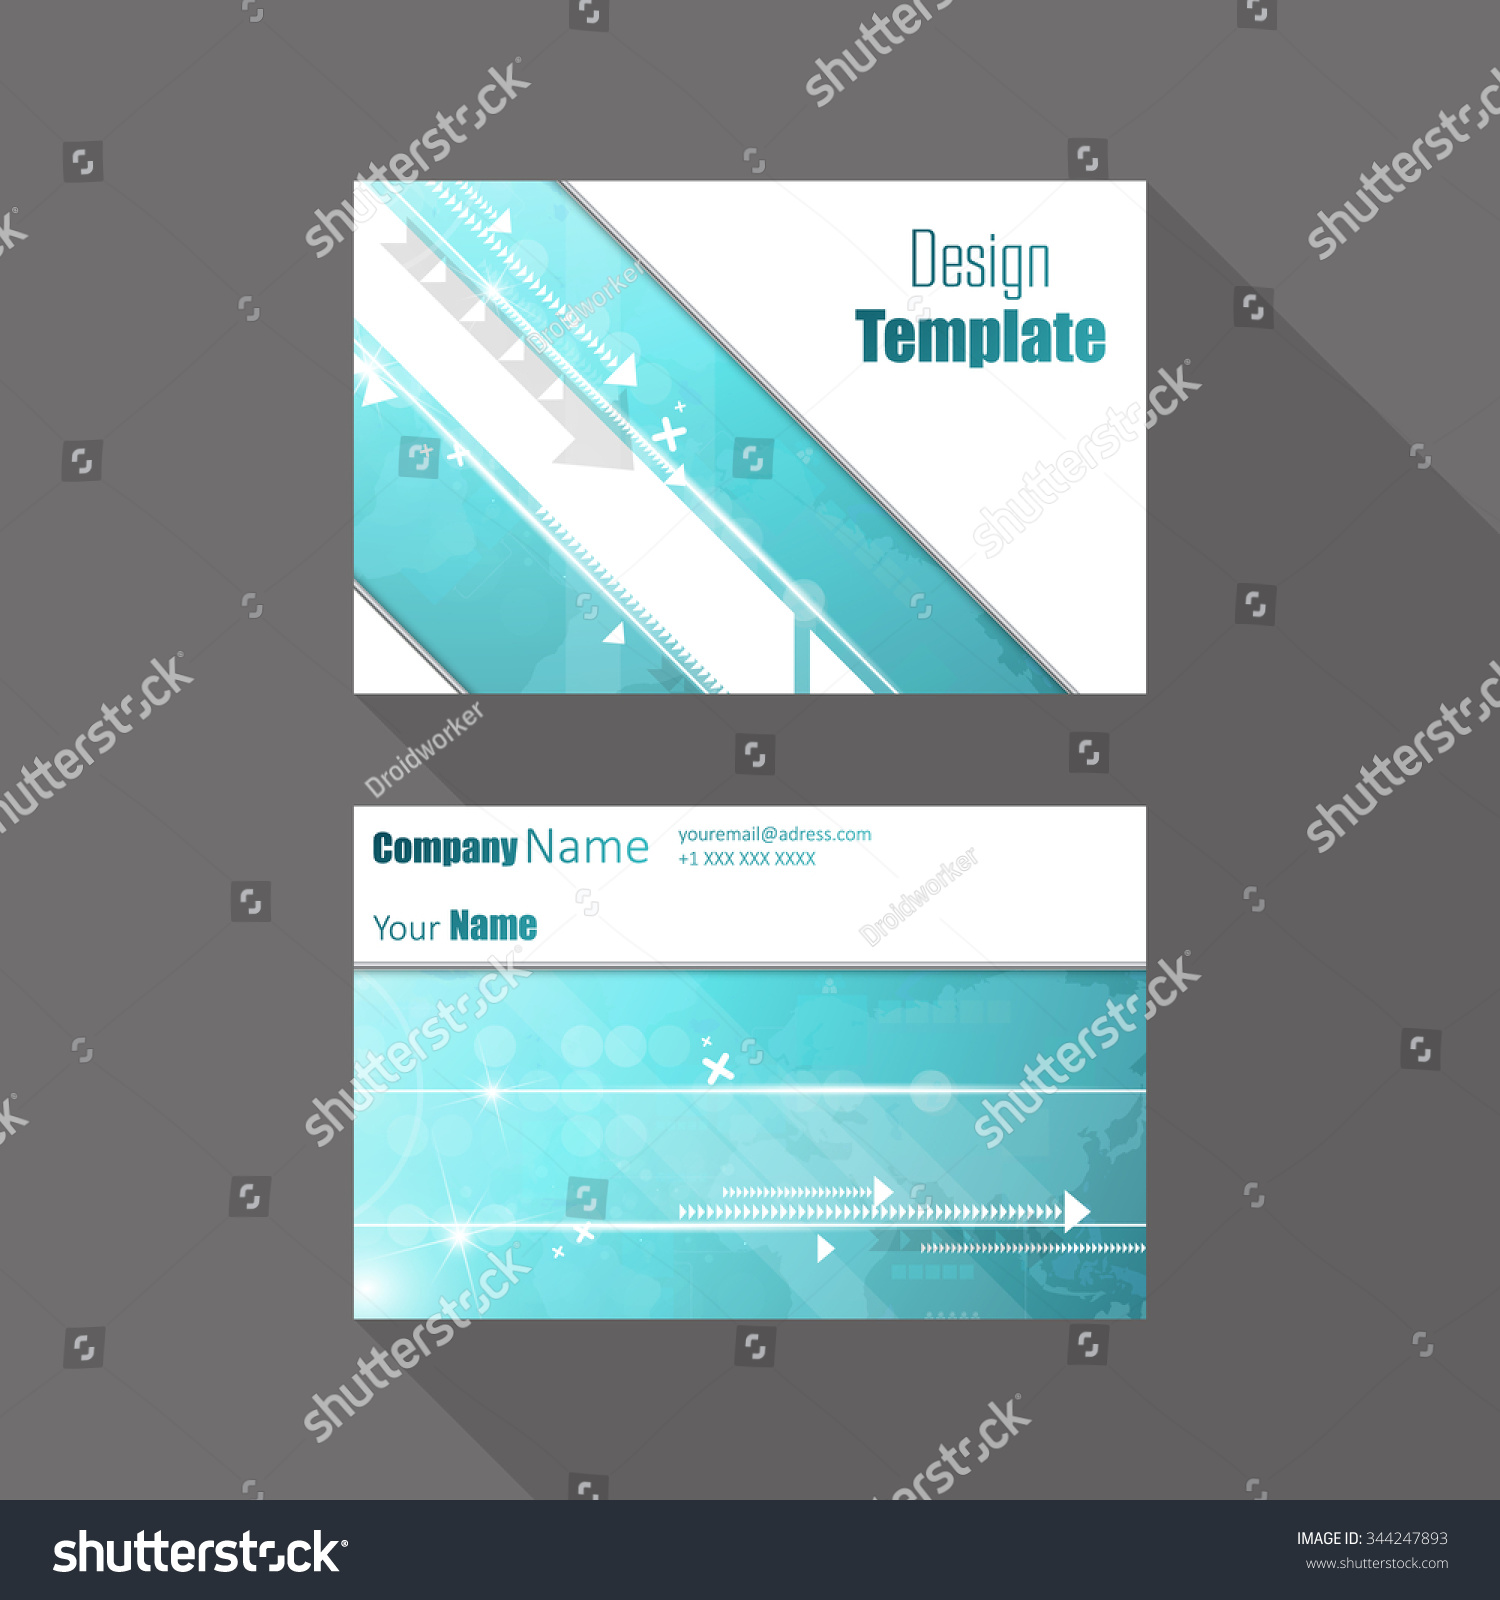 Technology Business Card Vector Stock Vector 344247893 - Shutterstock